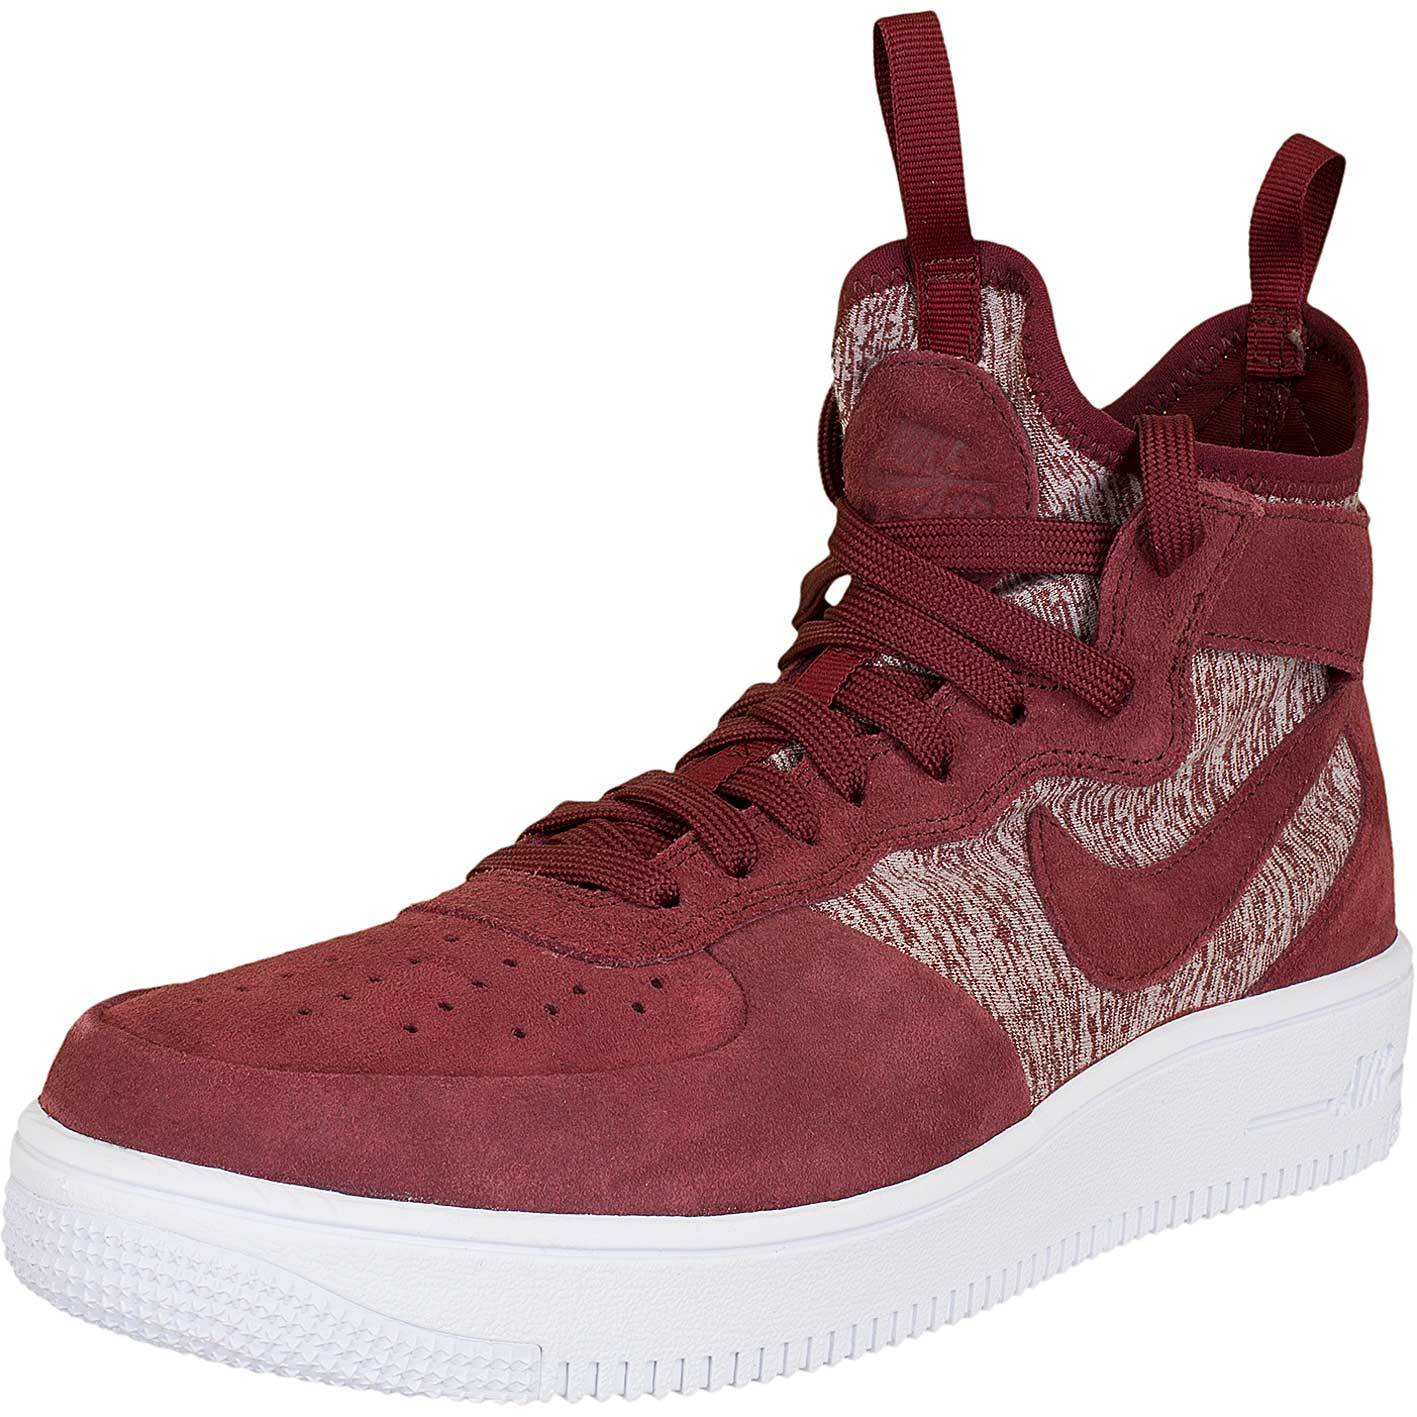 new product 17a6a bba58 Nike Sneaker Air Force 1 UF Mid Premium rotweiß